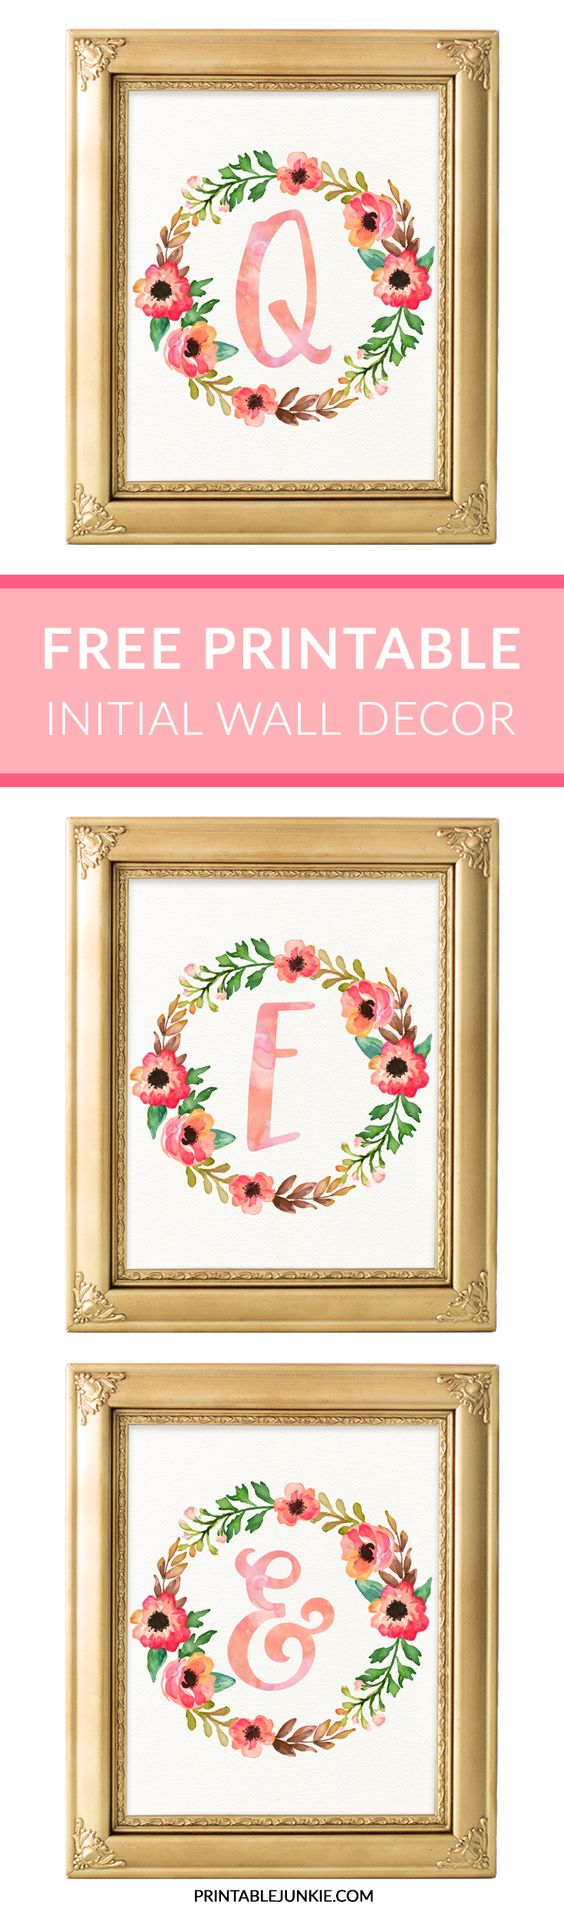 Initials surrounded with flowers - personalized printable for nurseries or bedrooms and they're free!